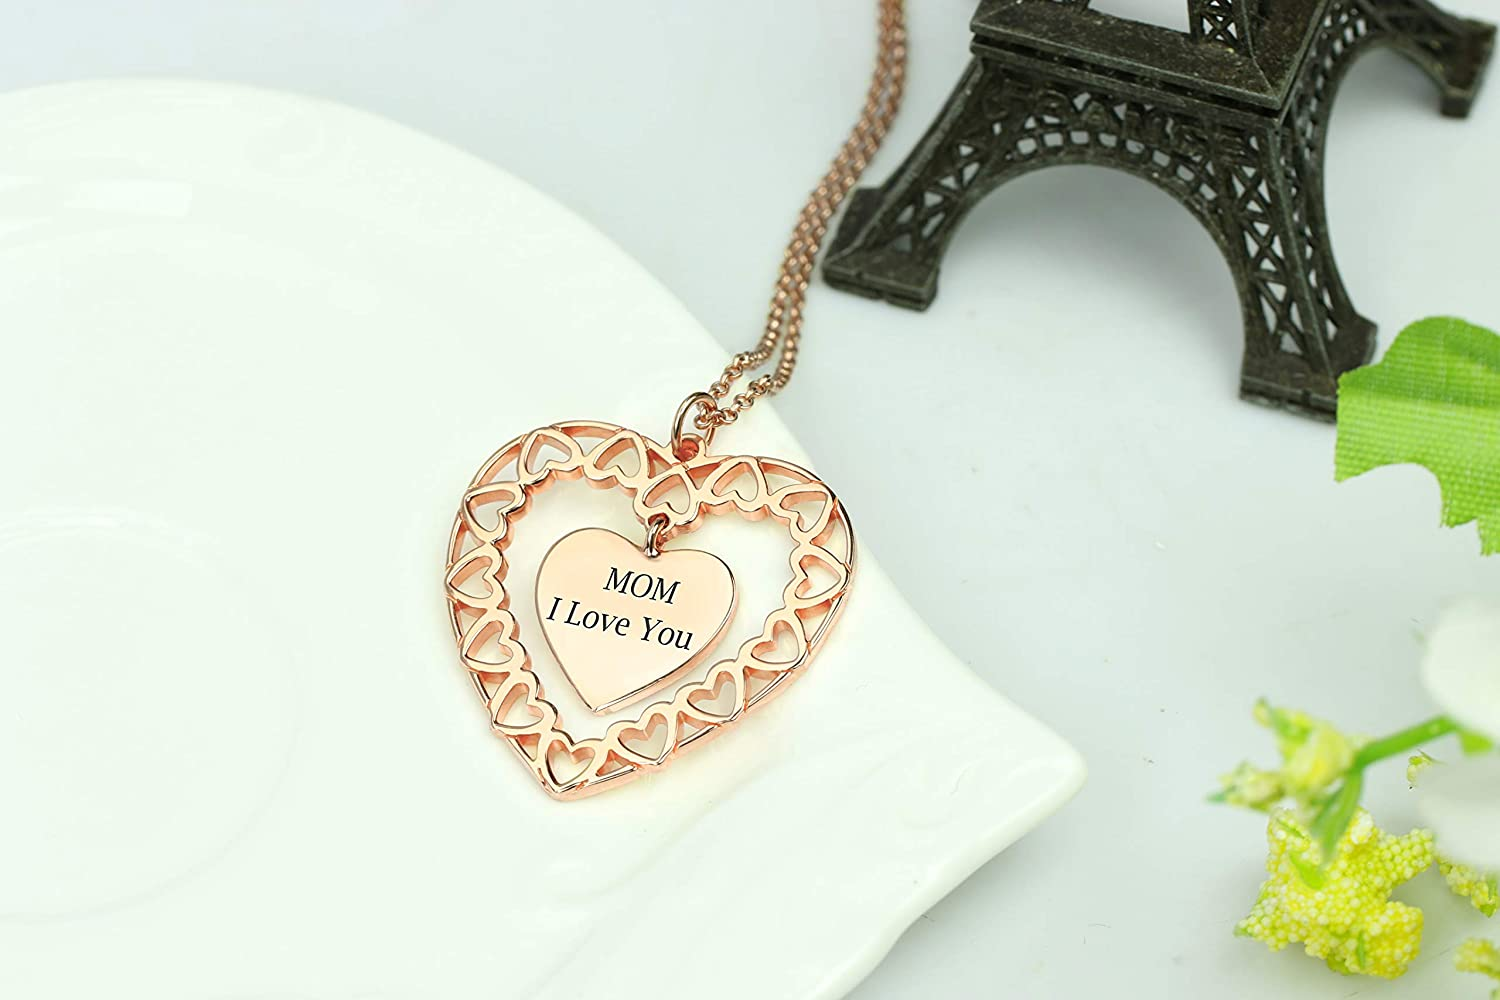 Getname Necklace Engraved Heart Love Necklace for Mom Heart Pendent Personalized Love Circle Necklace Best